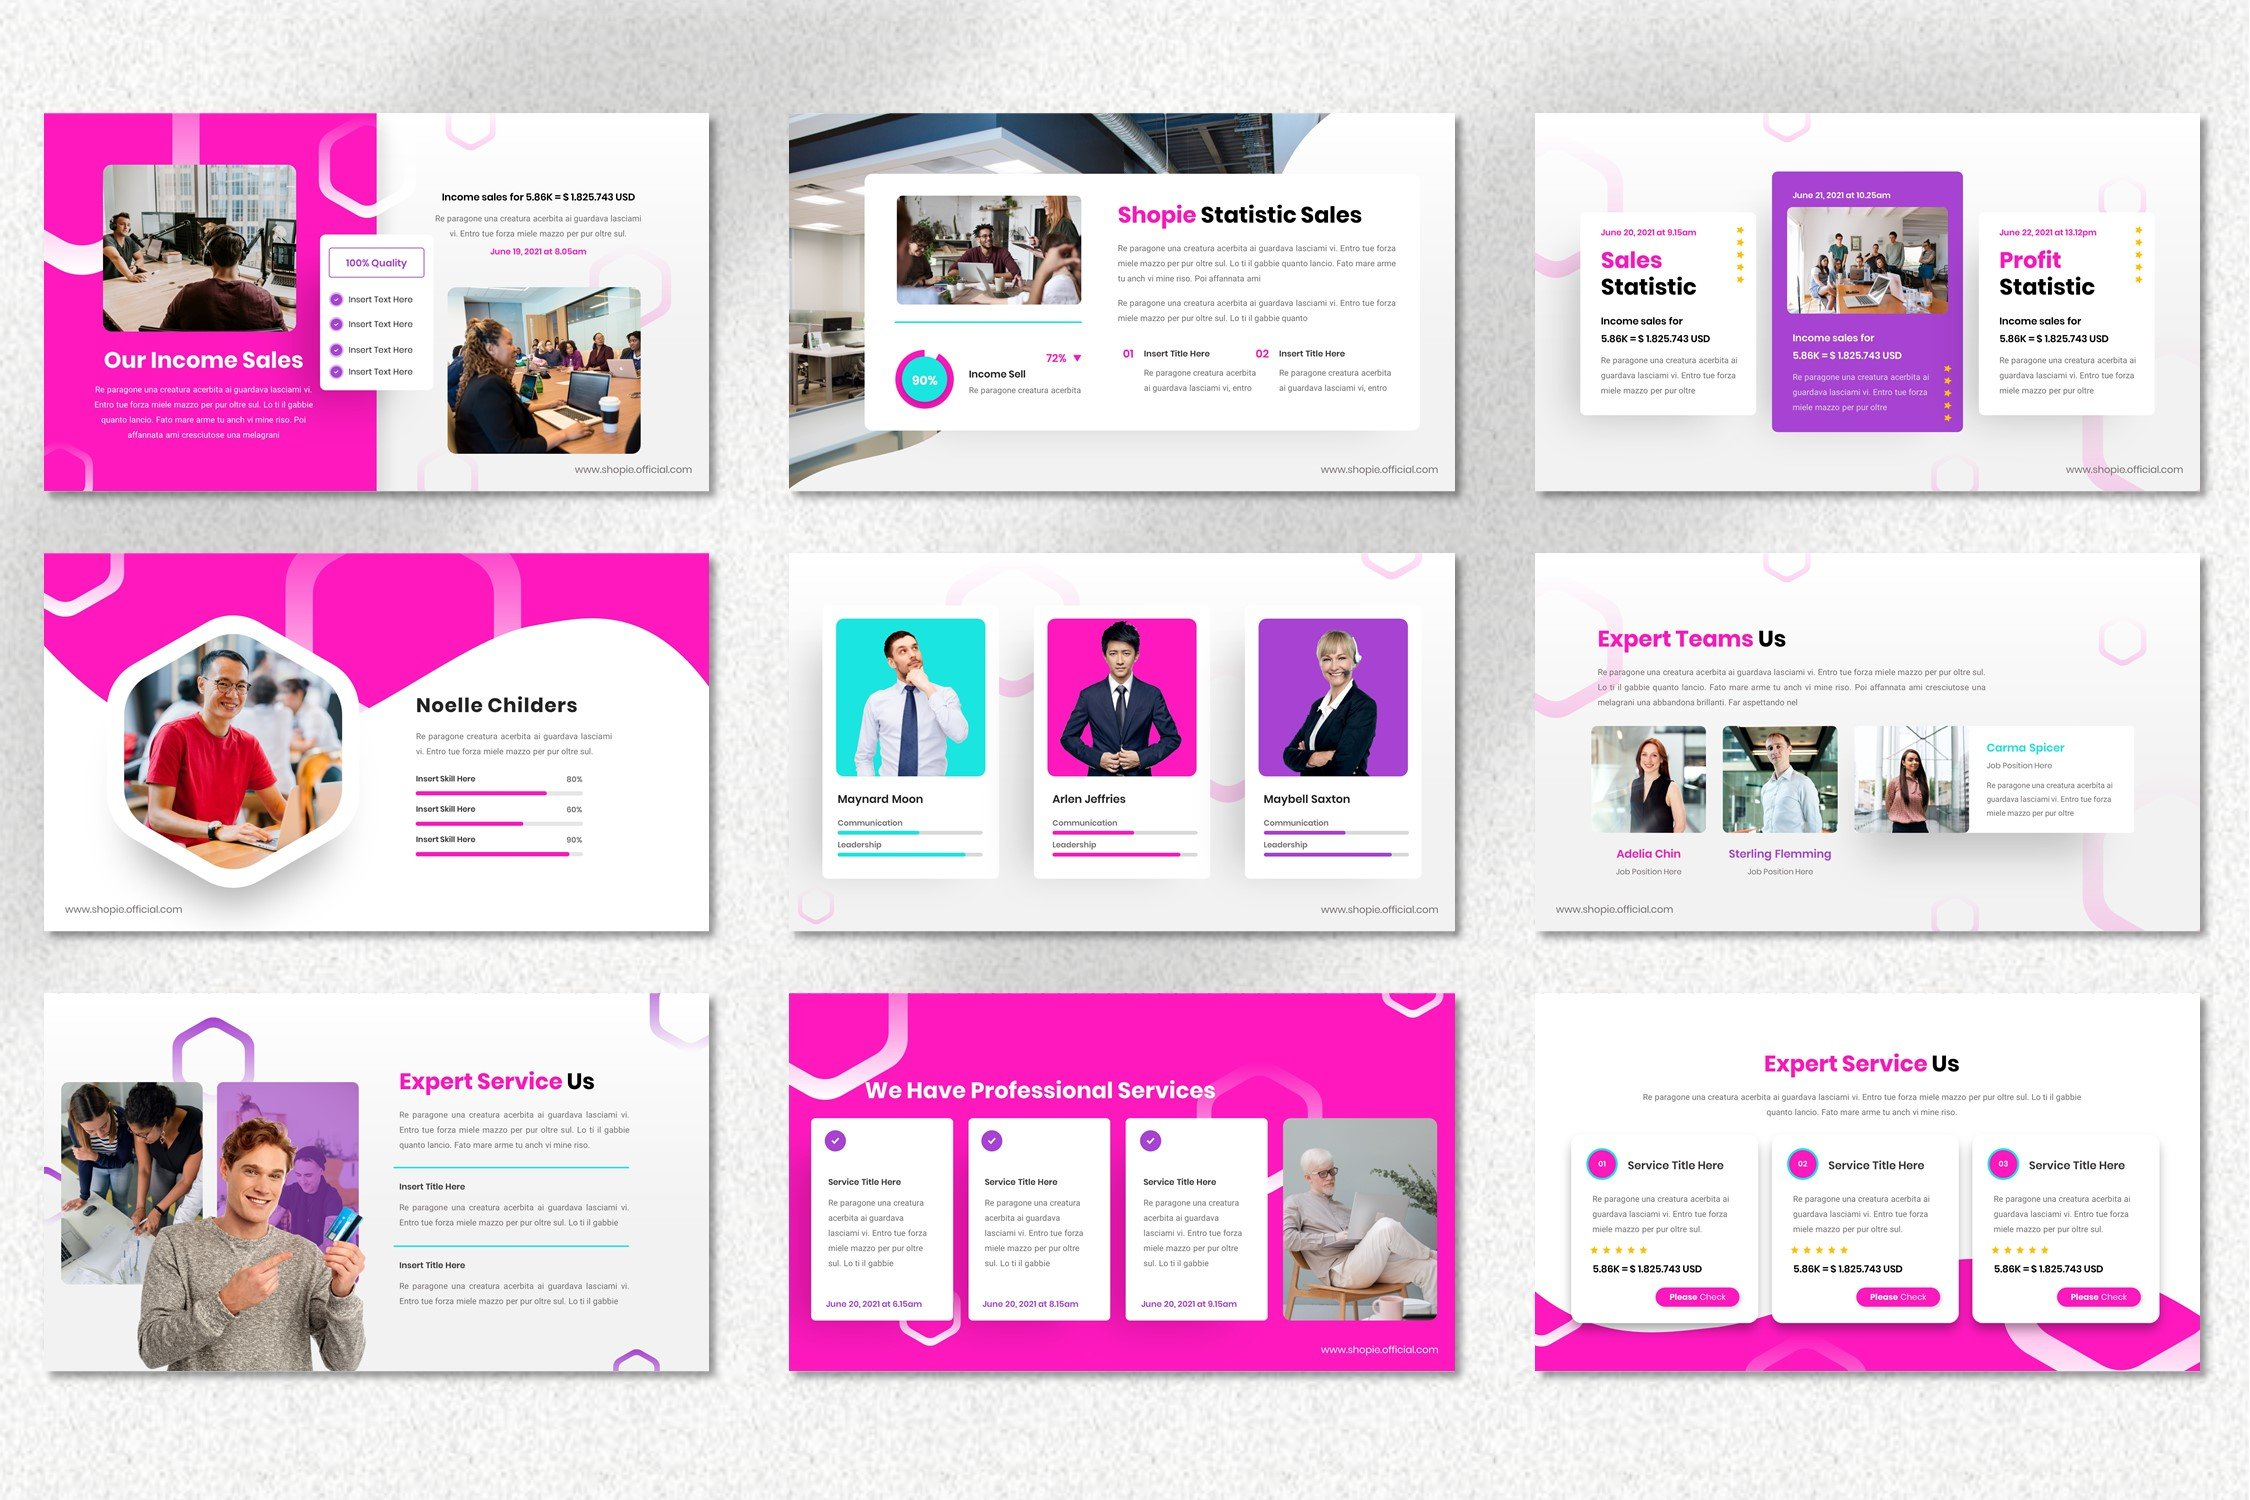 Shopie is a mobile friendly template.